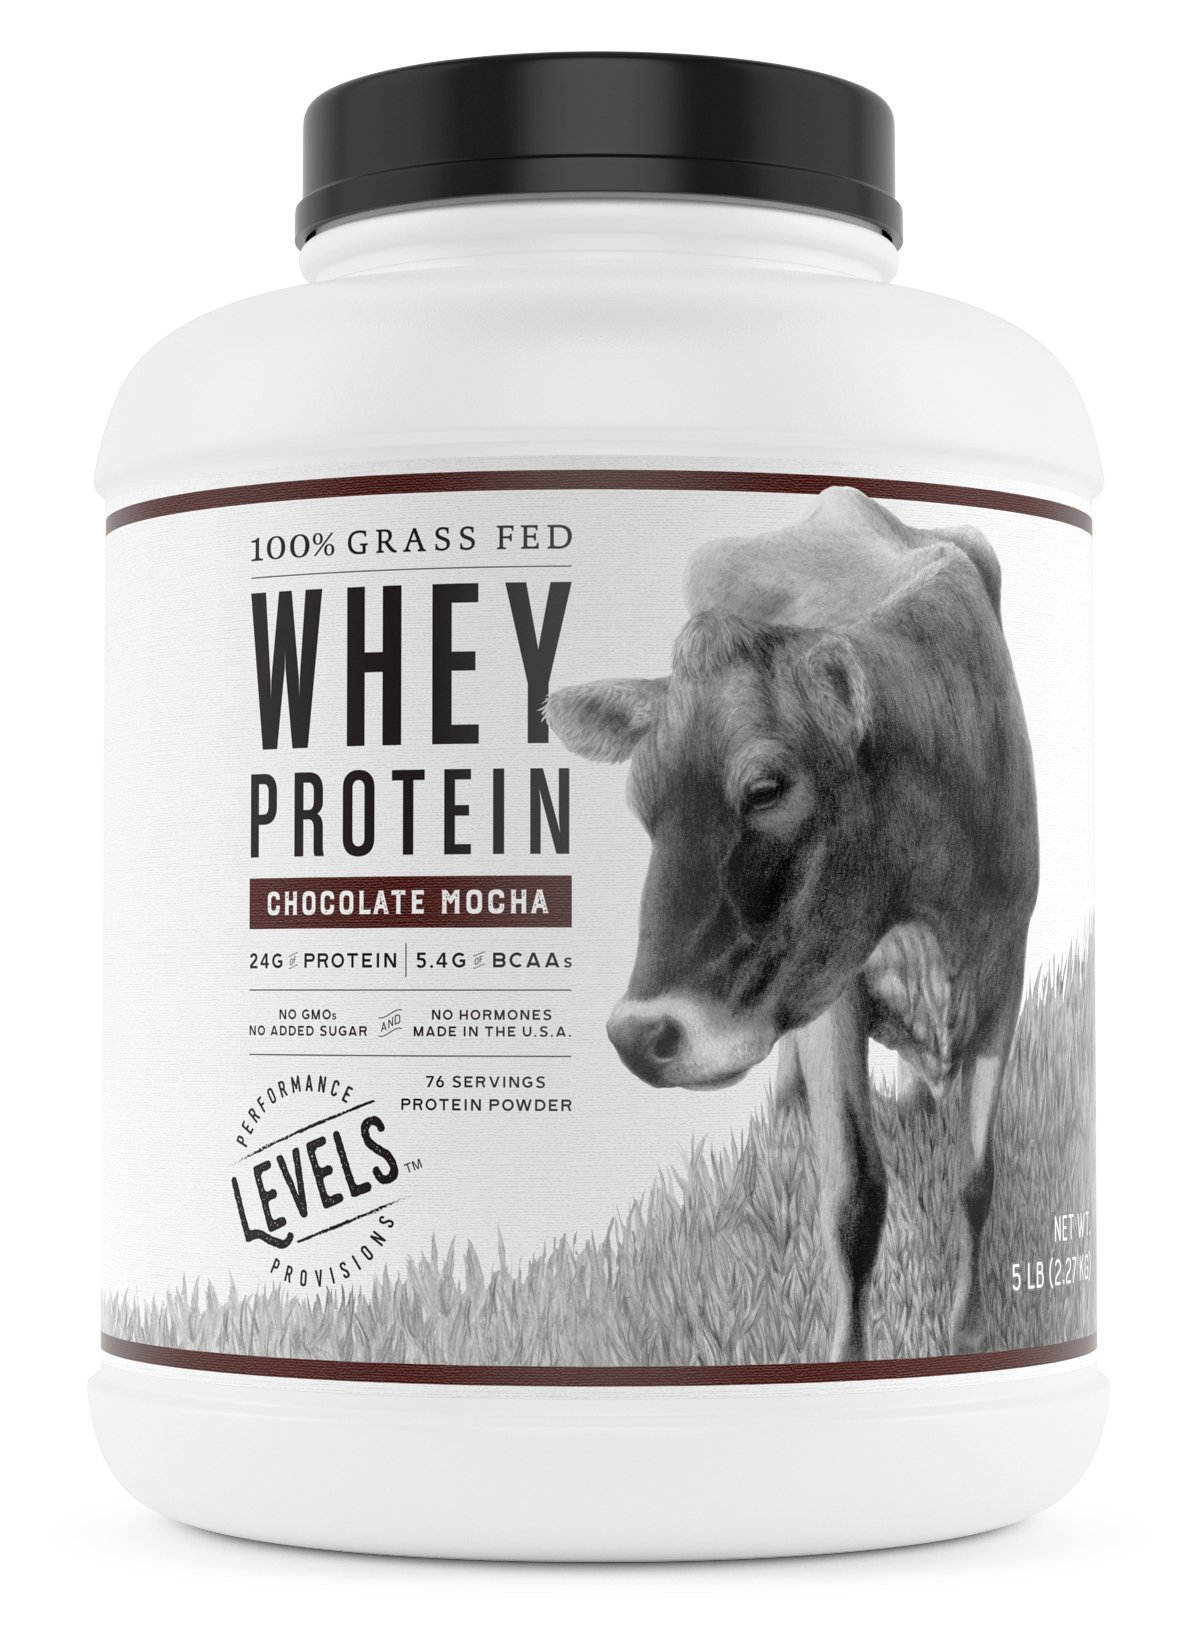 Levels 100% Grass Fed Whey Protein, No GMOs, Chocolate Mocha, 5LB by Levels Nutrition